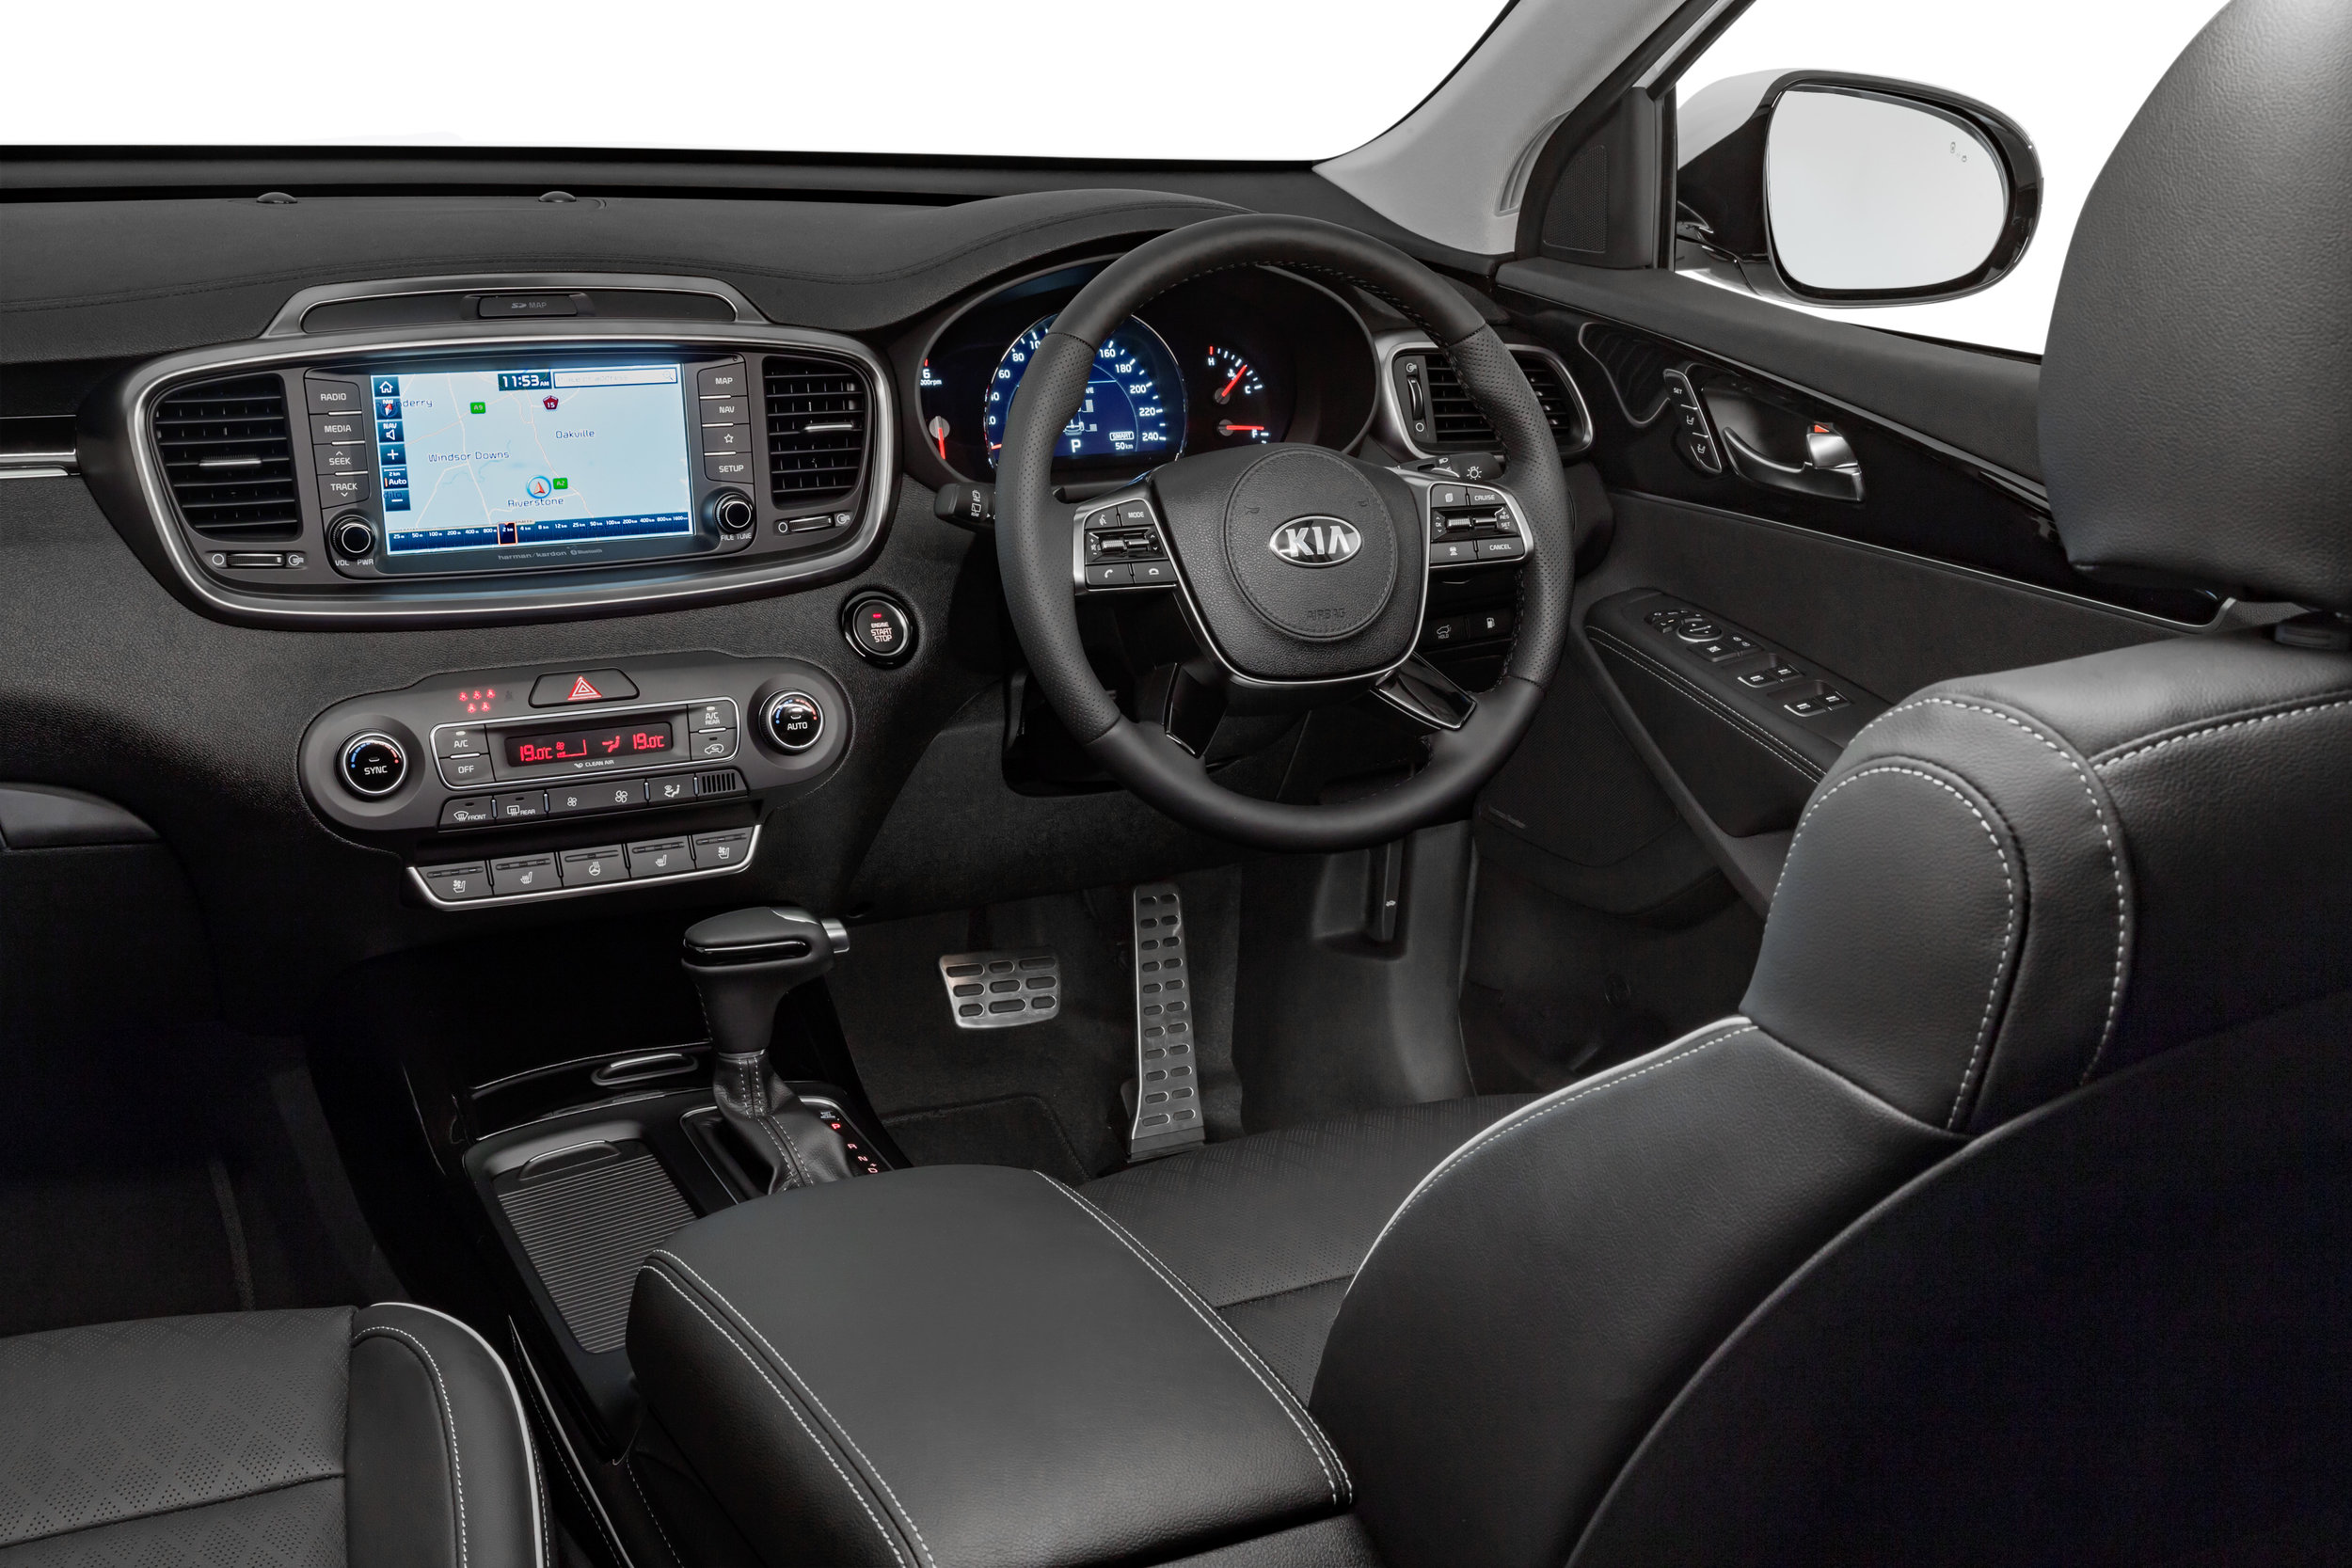 Sorento's interior offers an immense equipment level and great comfort - but remember to switch off the (awful) Lane Keeping Assistant